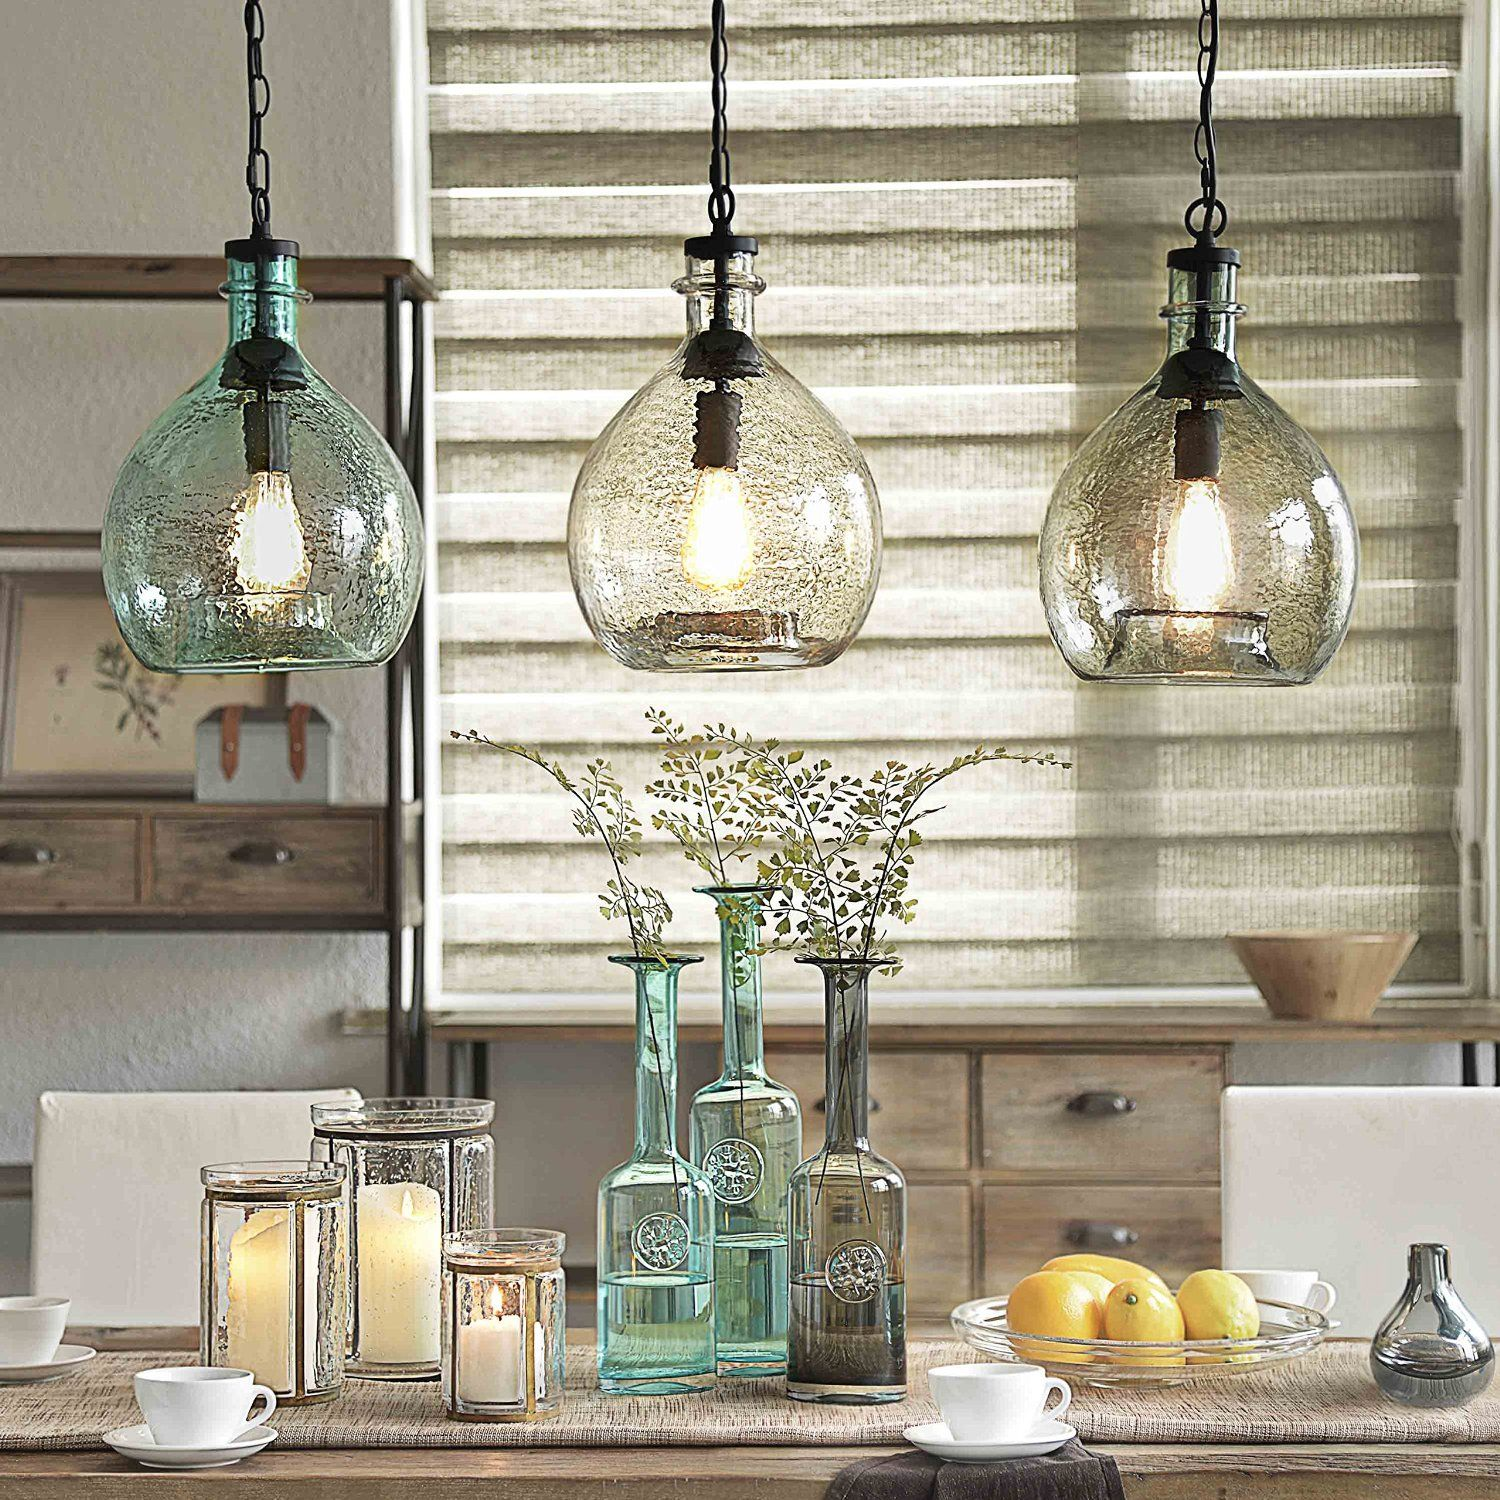 Kitchen Island Pendant Lights Tiled Floors Best 25 43 Clear Glass Light Ideas On Pinterest